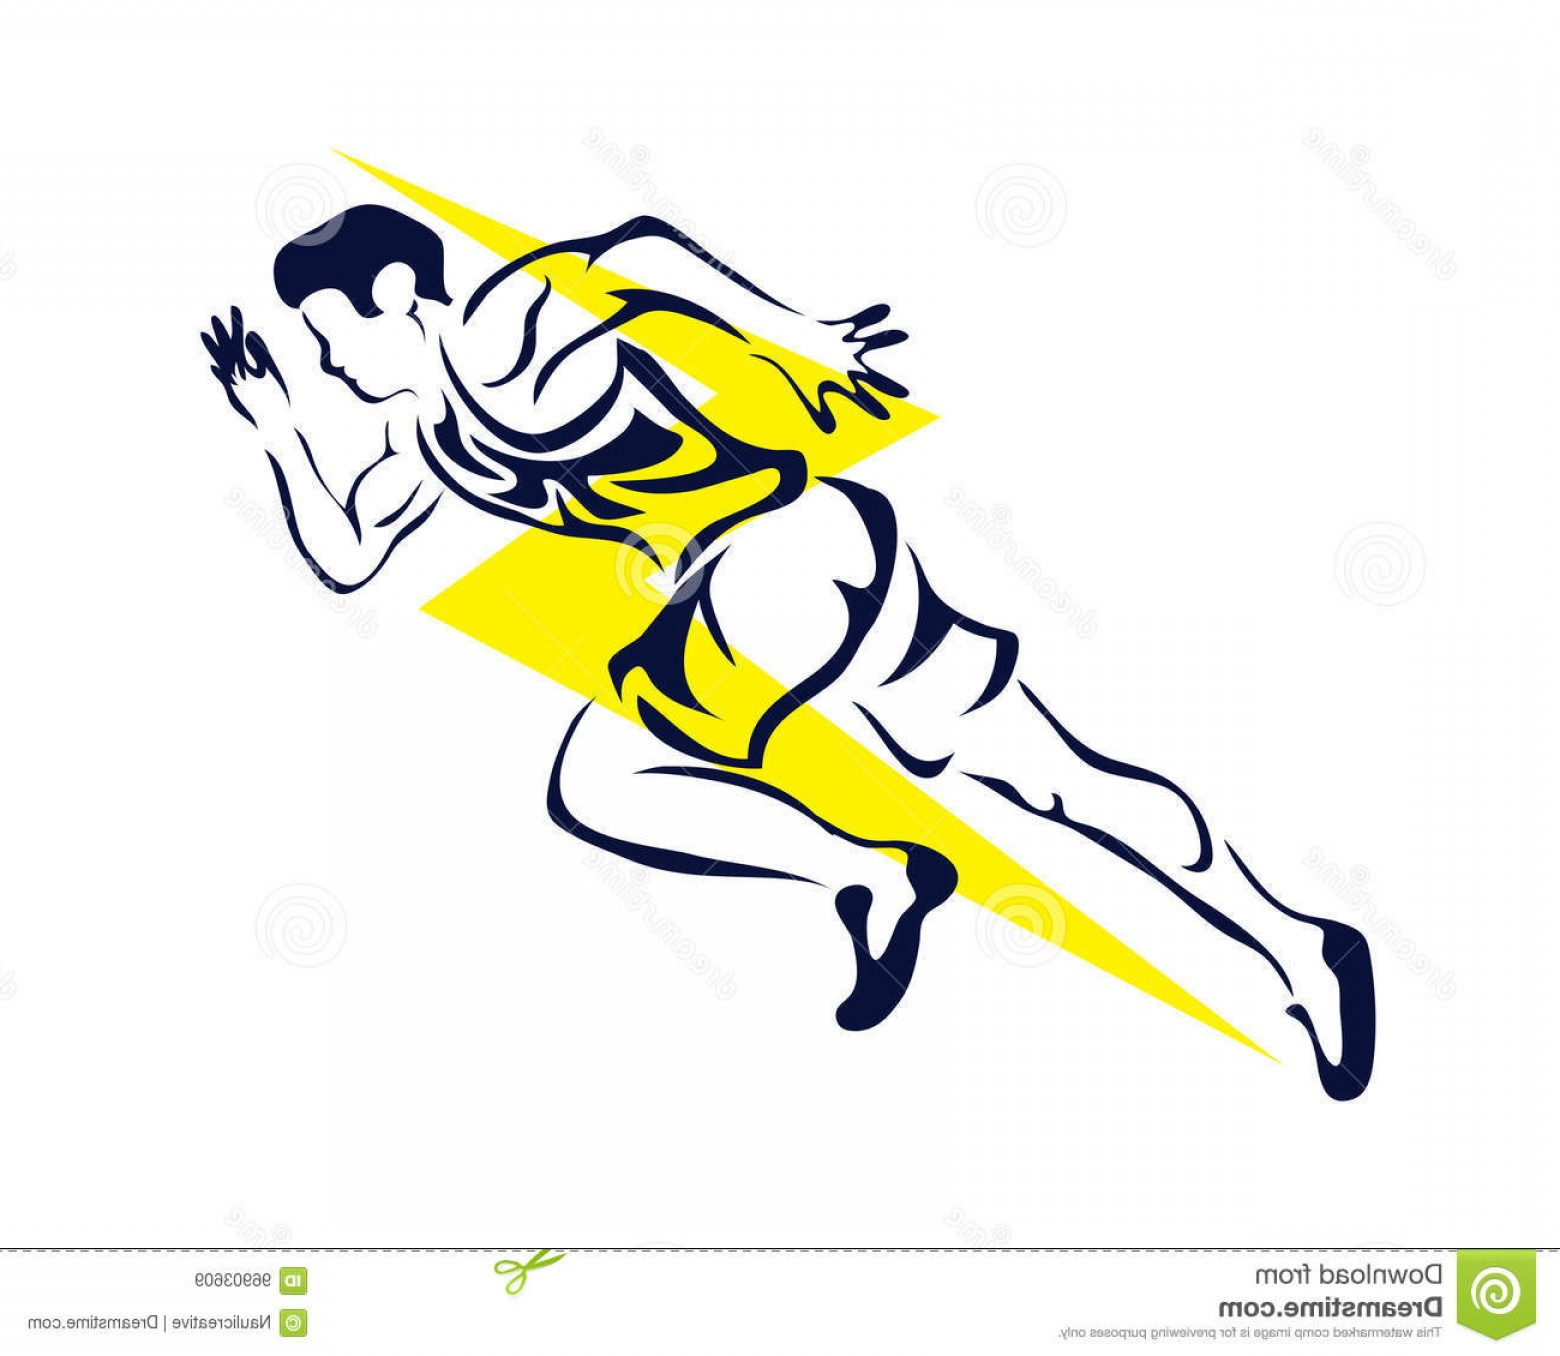 Sprint Logo Vector: Stock Illustration Modern Passionate Runner Silhouette Action Logo Young Athlete Sprint Pose Image